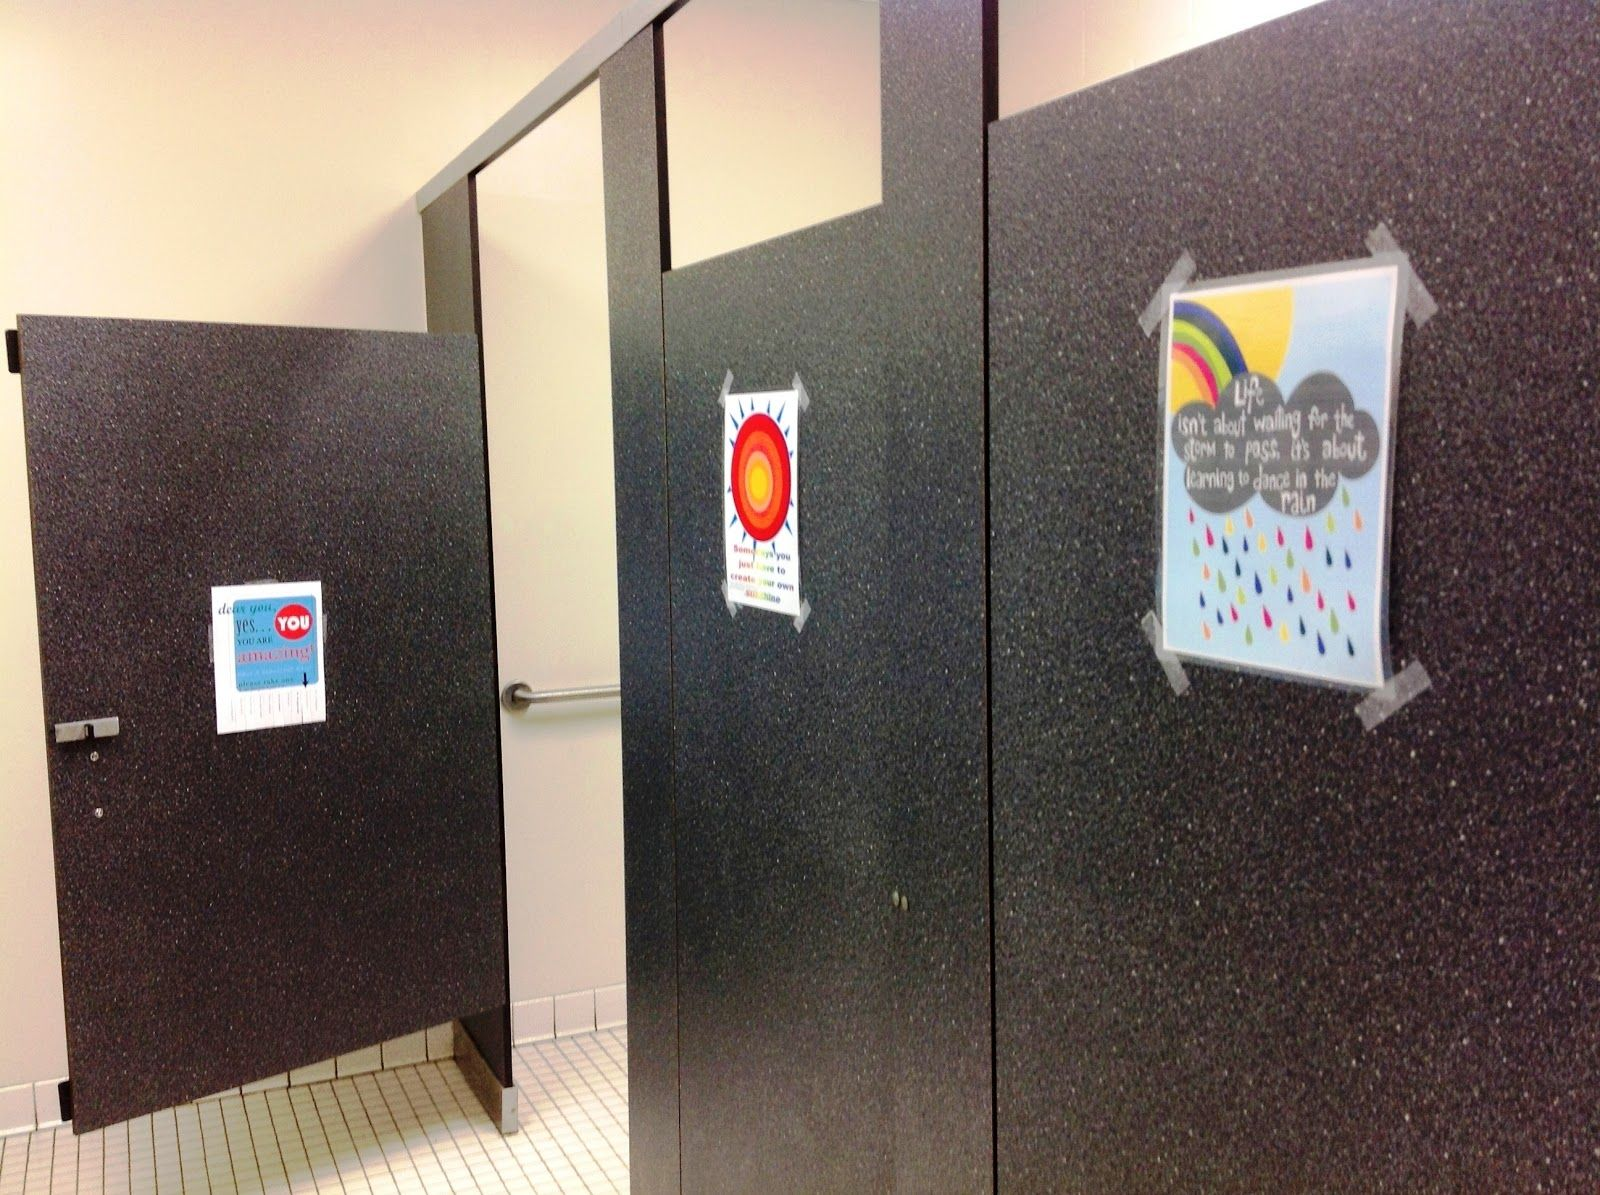 Going to the bathroom at school - The Middle School Counselor The Kindness Project Making The School A More Beautiful Place